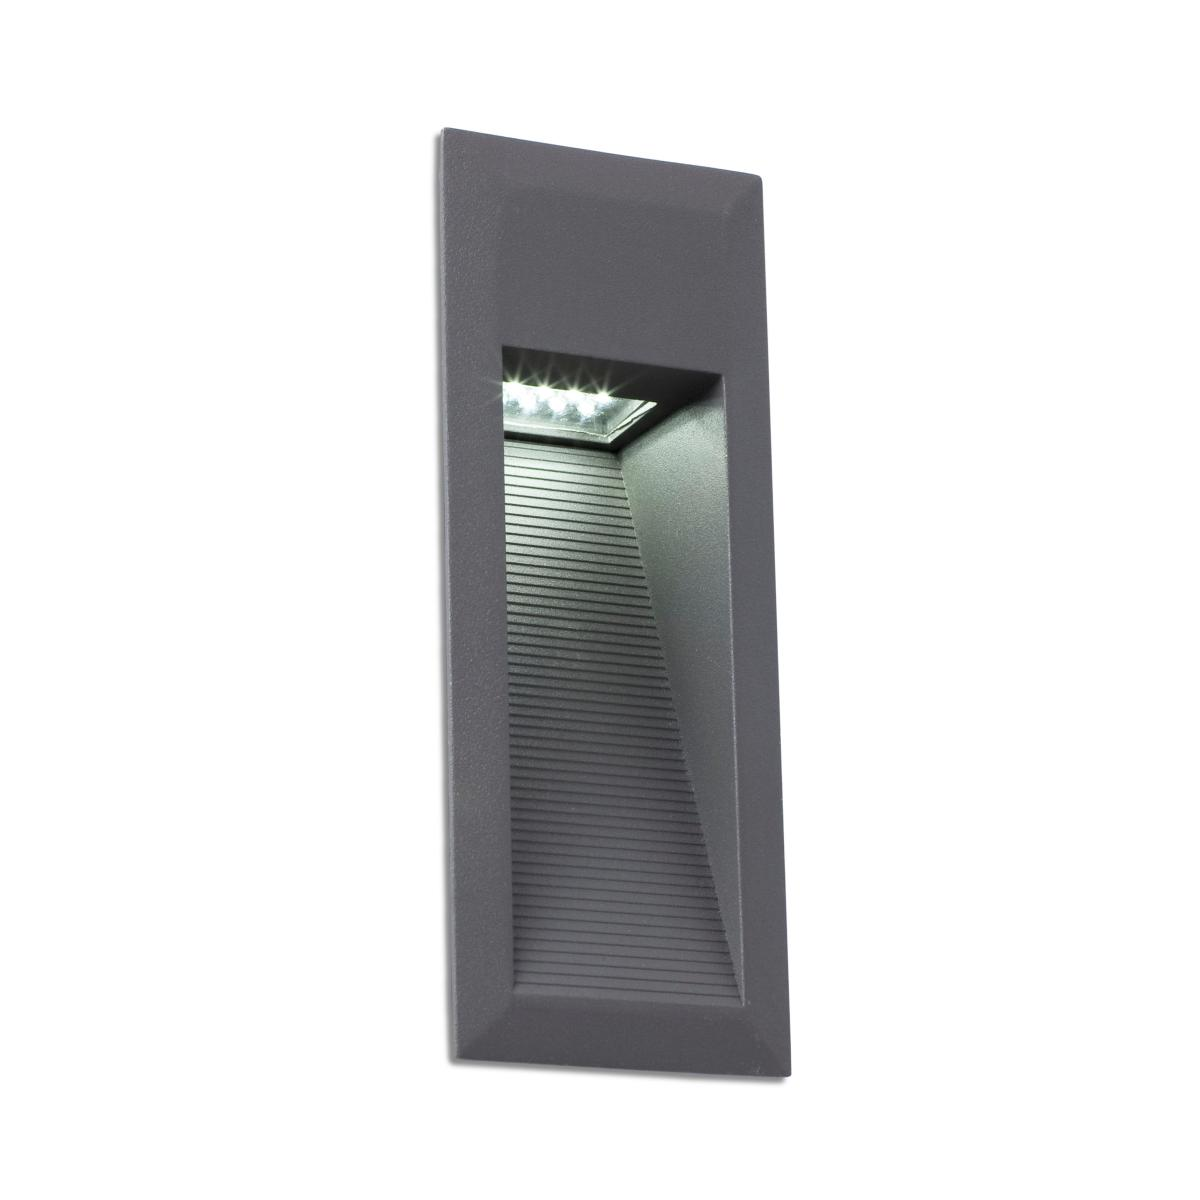 Eclairage Exterieur Led Encastrable Mural Spot Encastrable Mural Landai Faro Led 70400